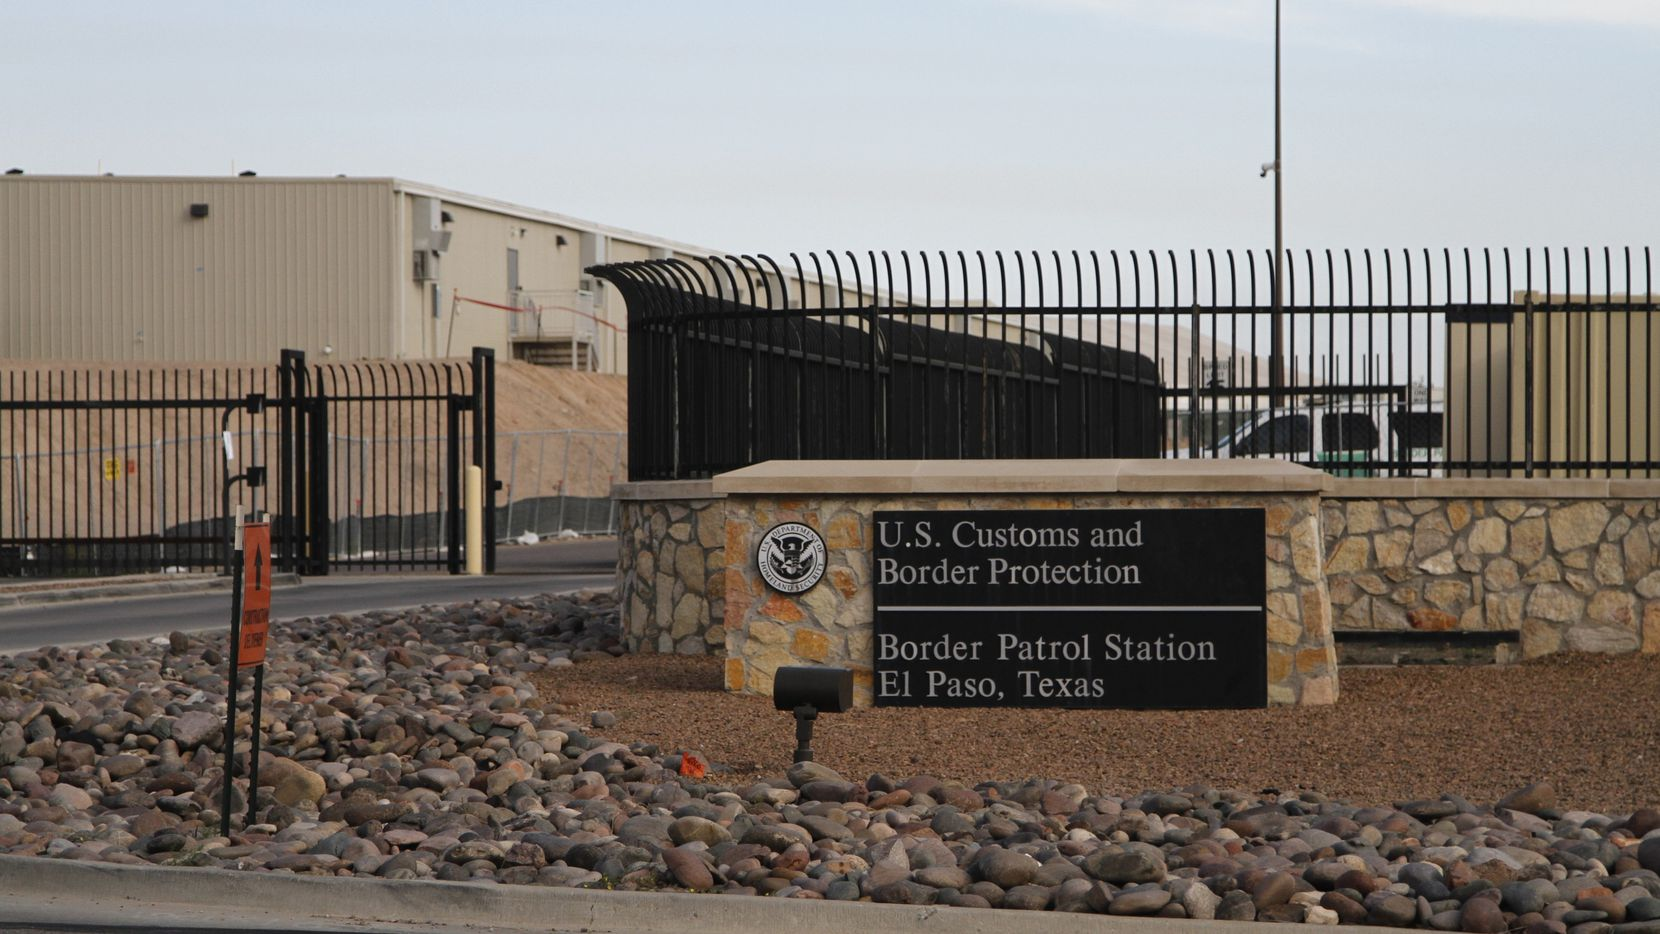 Some Dallas high school students were upset and scared when U.S. Customs and Border Protection officers were on campus for a job fair. The pictured Border Patrol Station One is located in El Paso.